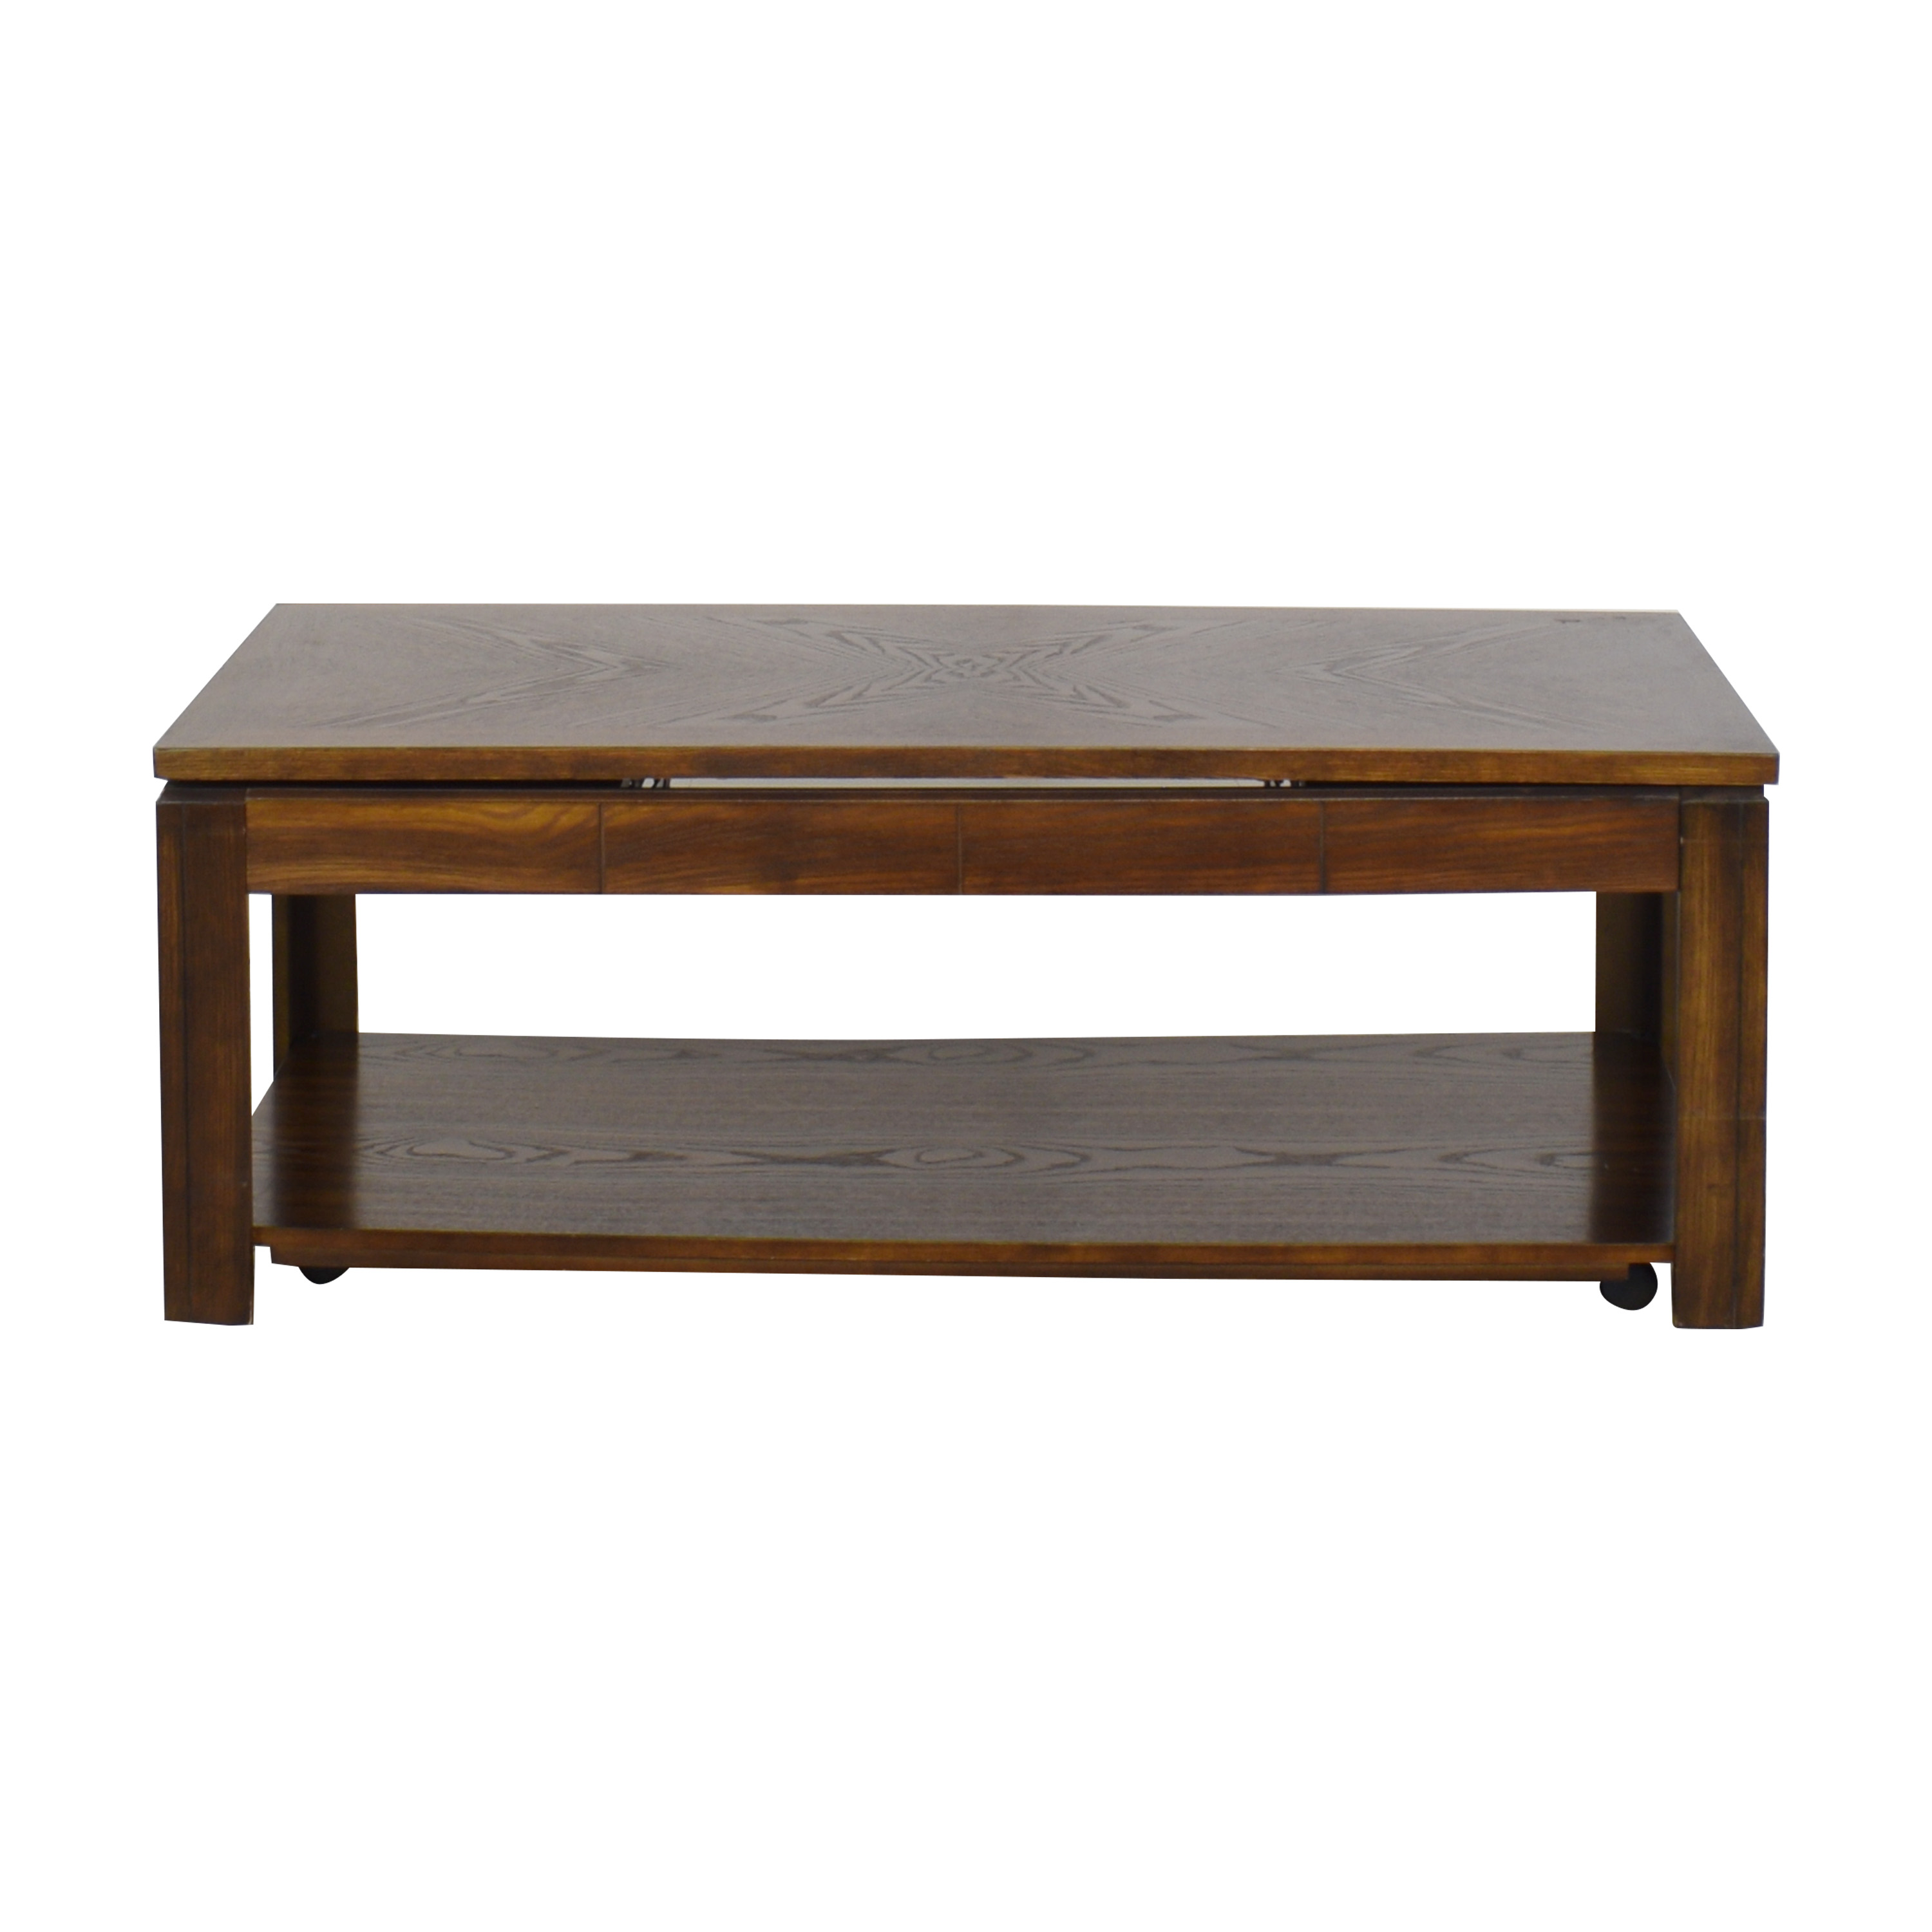 buy Raymour & Flanigan Lift Top Storage Coffee Table Raymour & Flanigan Coffee Tables